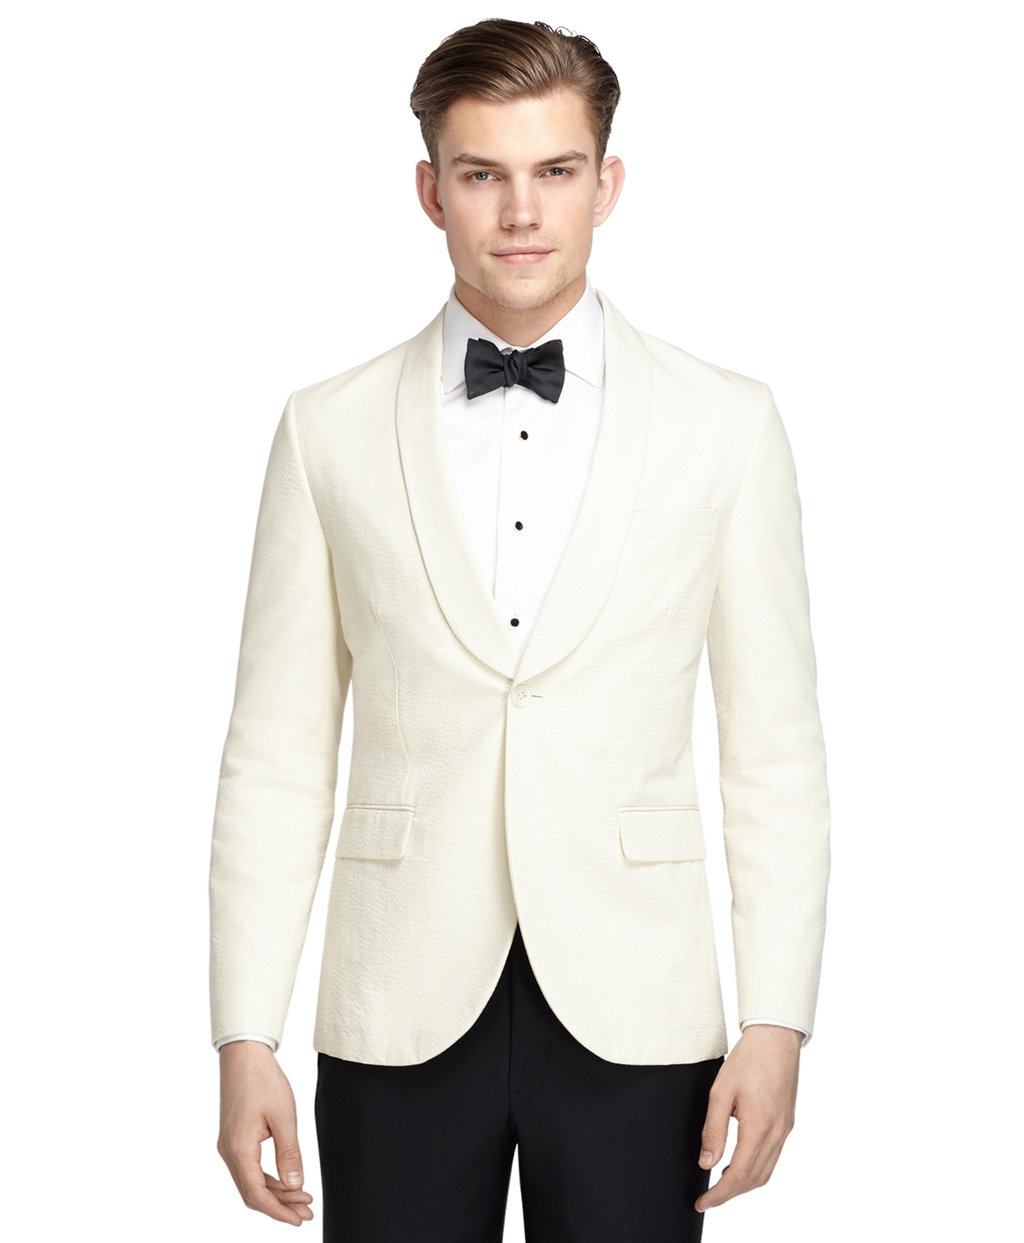 Fashionable Dinner Jackets for Men Fashionable Options in Dinner Jackets Stylish dinner jackets are perfect for men who want to wow everyone at the table. If you're on the lookout for a dazzling white dinner jacket sale on the Internet, MensItaly is here to accommodate you fully.